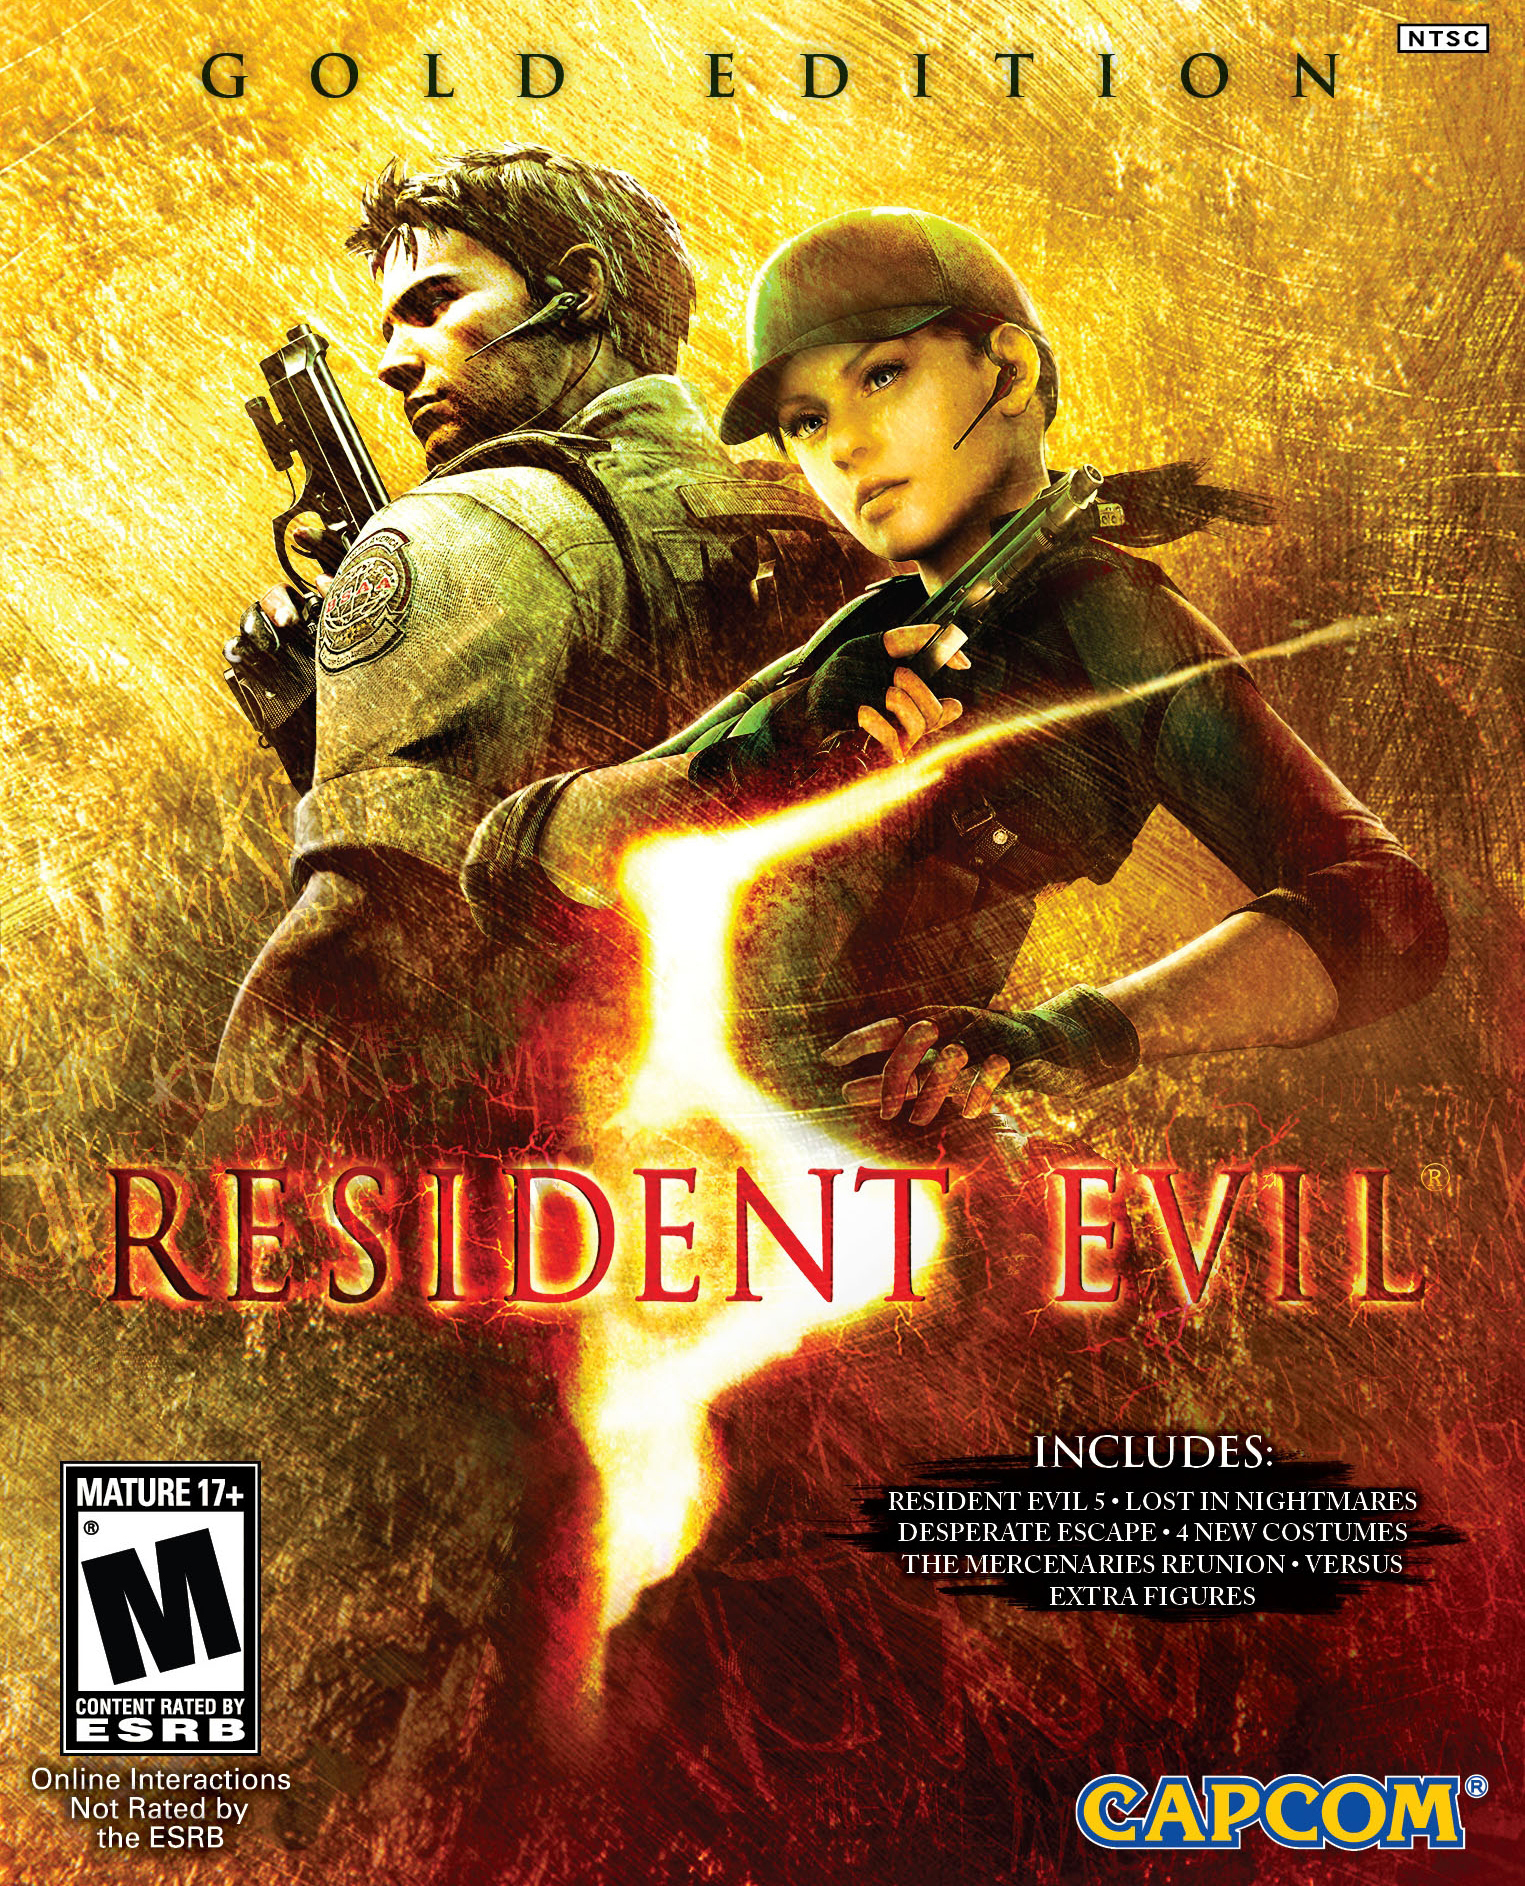 Resident Evil 5 Gold Edition Original Soundtrack